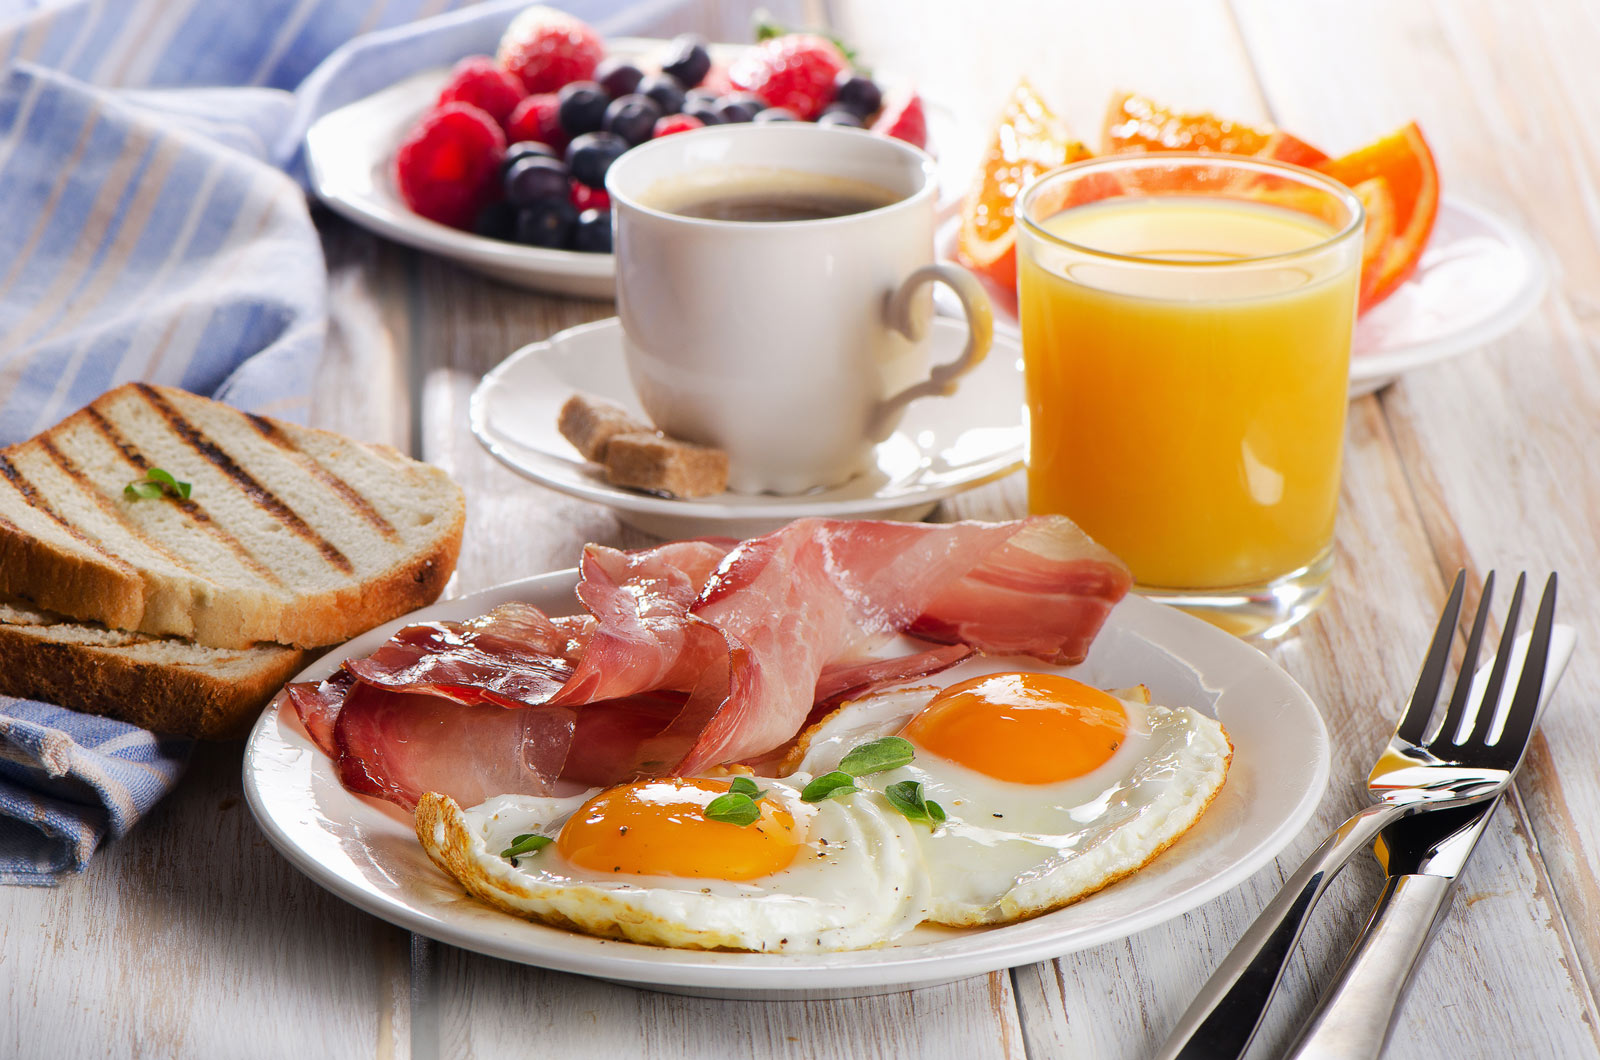 FANCY A FREE BREAKFAST? -